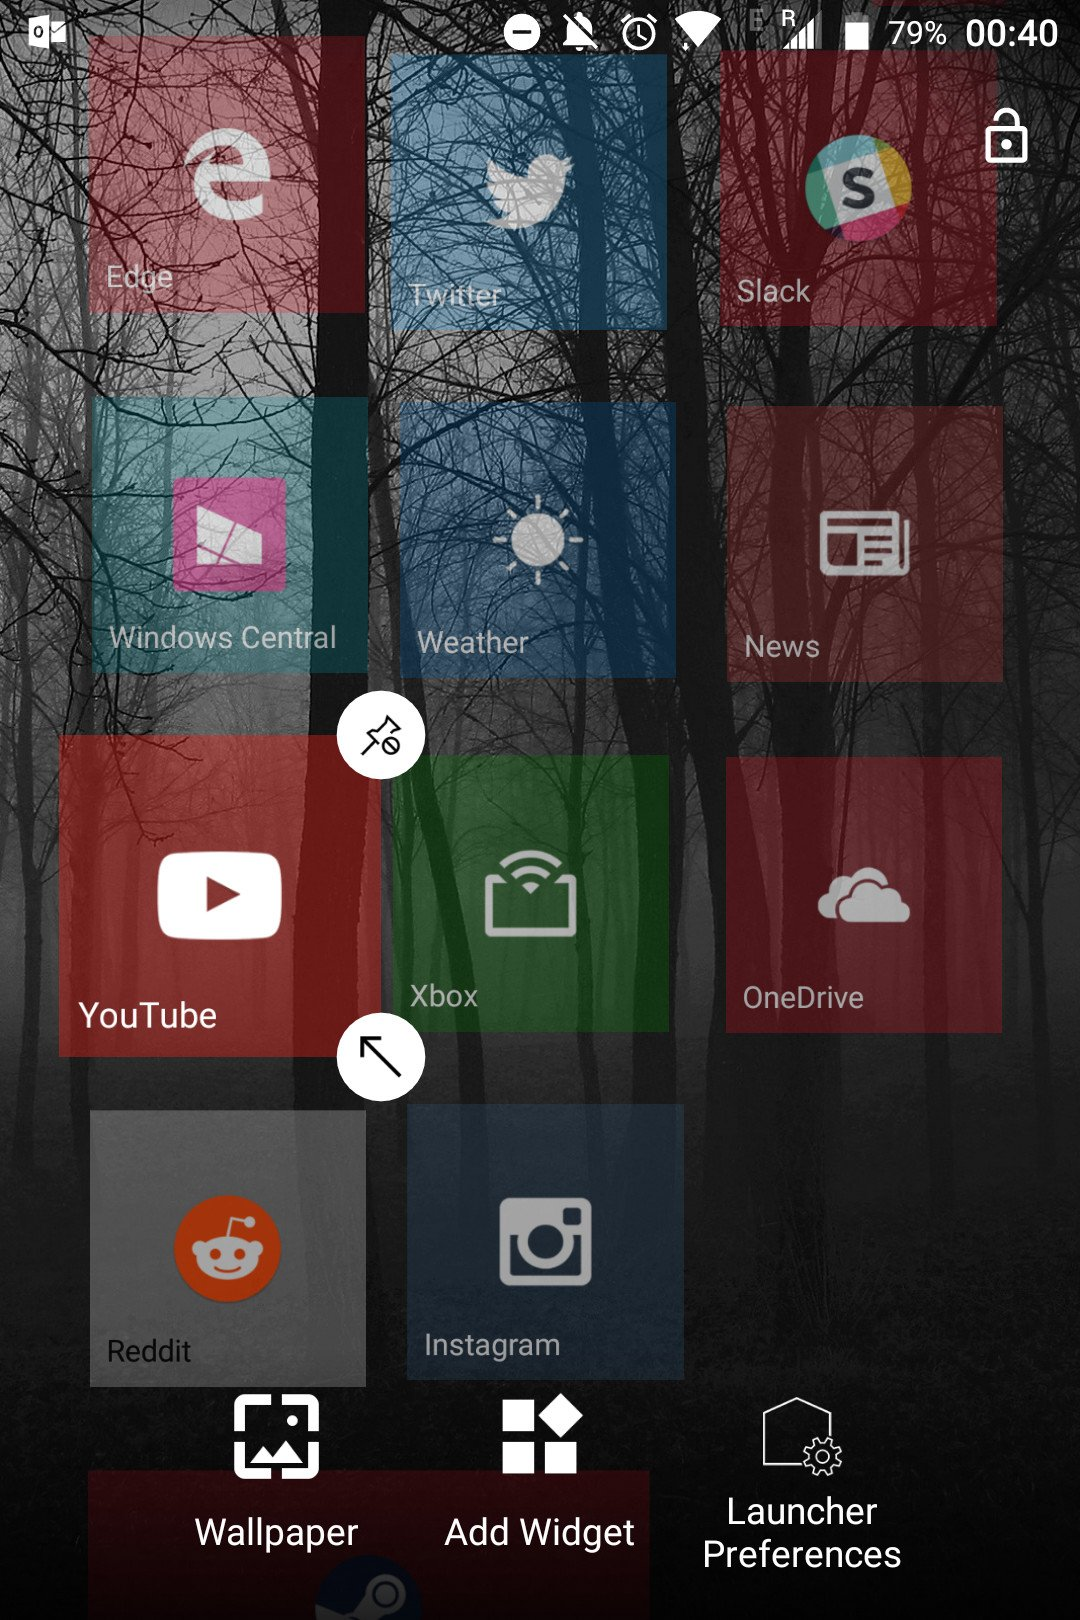 Nokia Lumia Launcher : nokia, lumia, launcher, Launcher, Brings, Windows, Phone, Android, Central